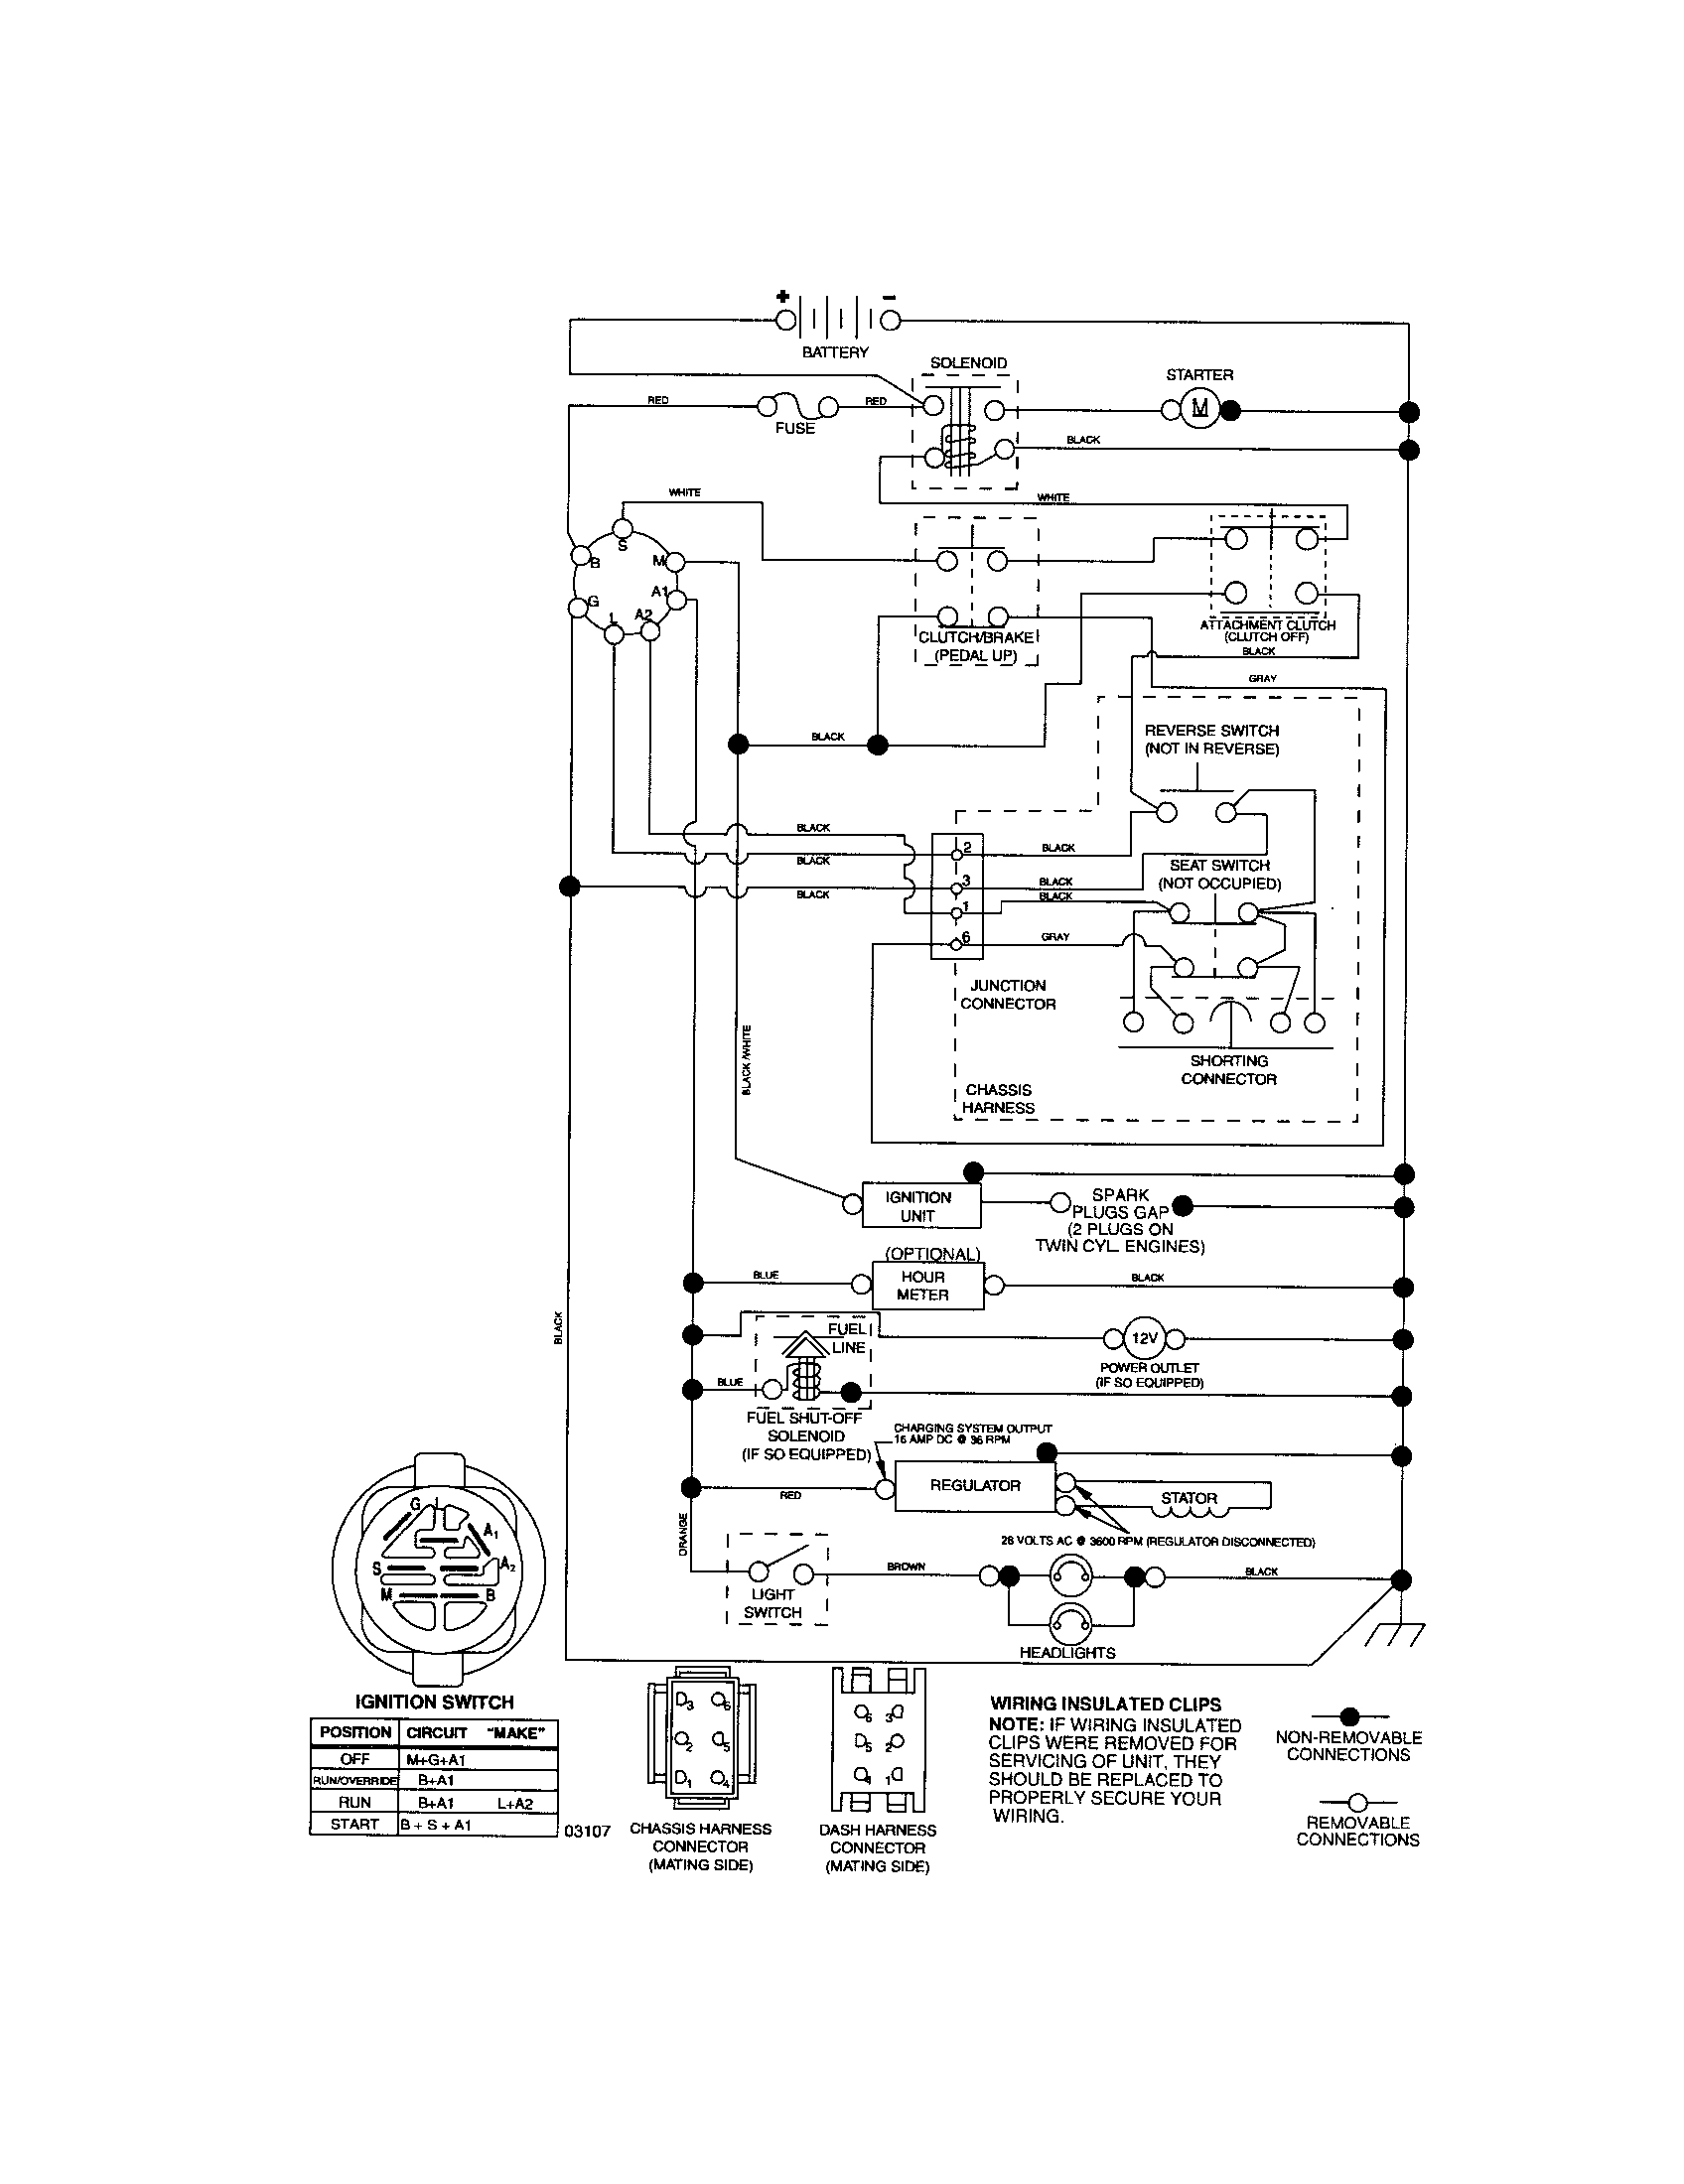 Craftsman Lawn Mower Model 917 Wiring Diagram Gallery